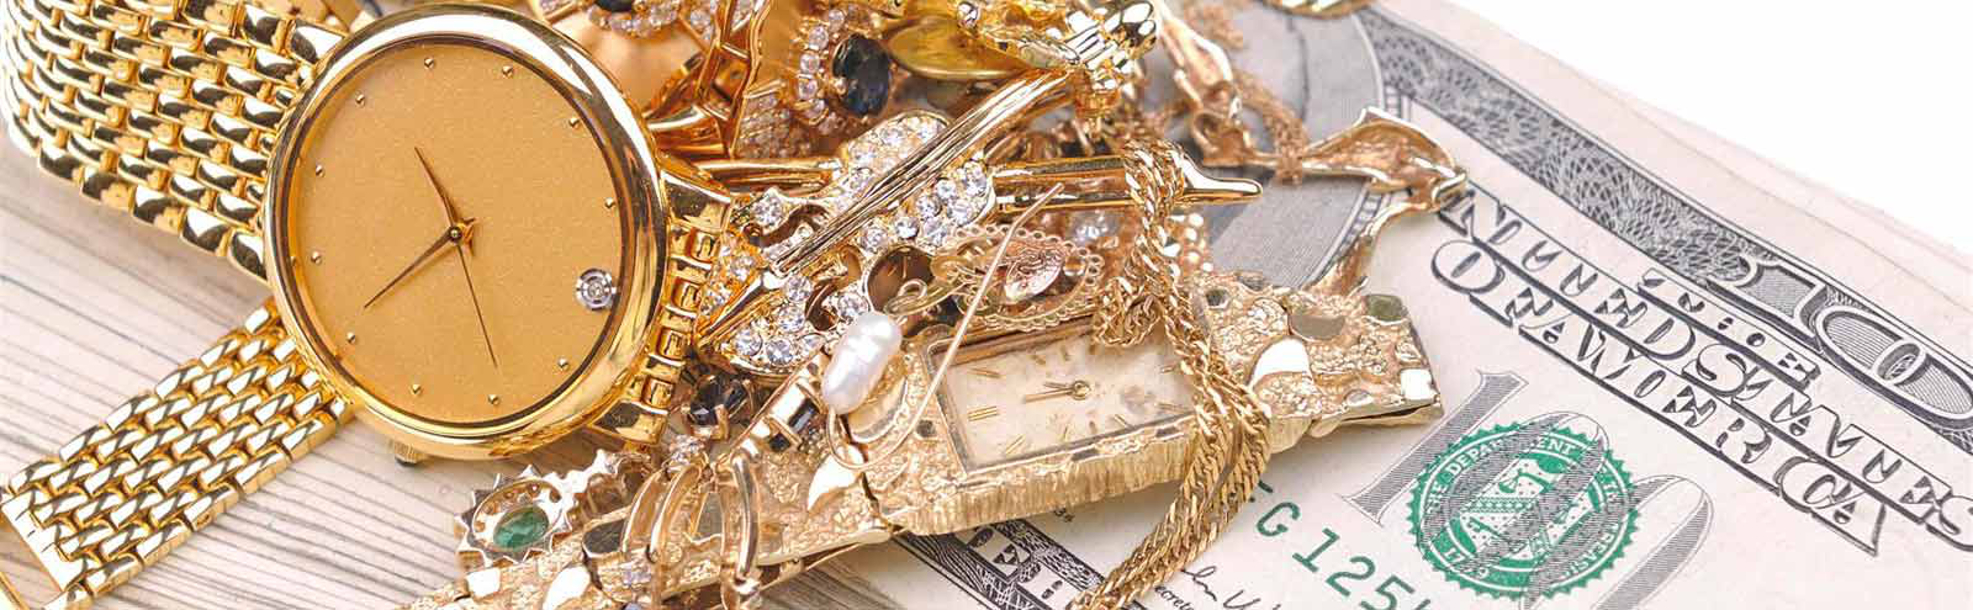 we buy gold, jewelry, silver, diamonds for cash